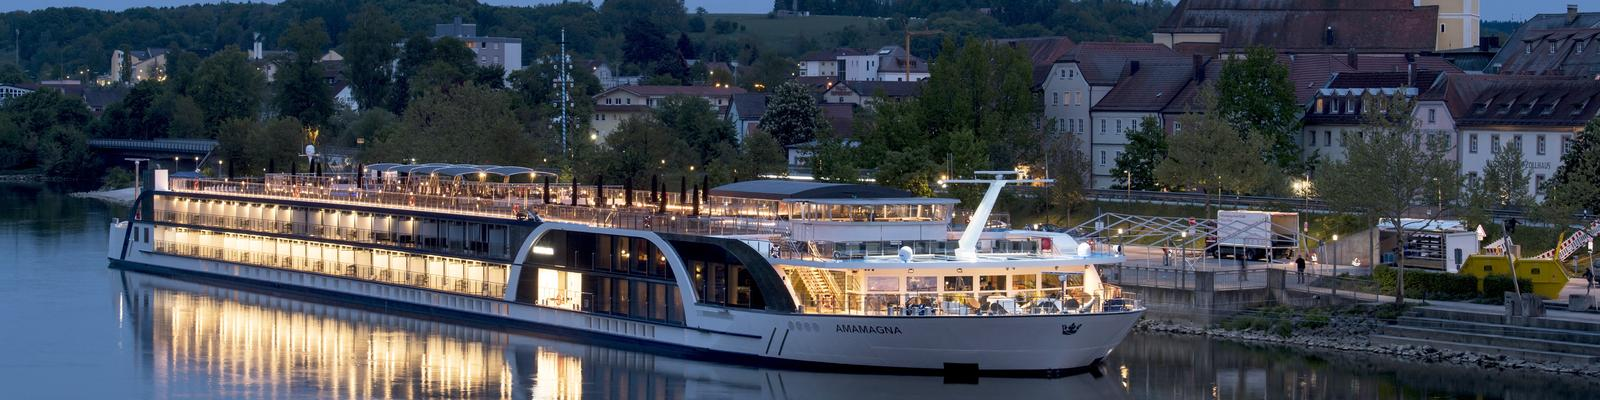 AmaMagna (Photo: AmaWaterways)